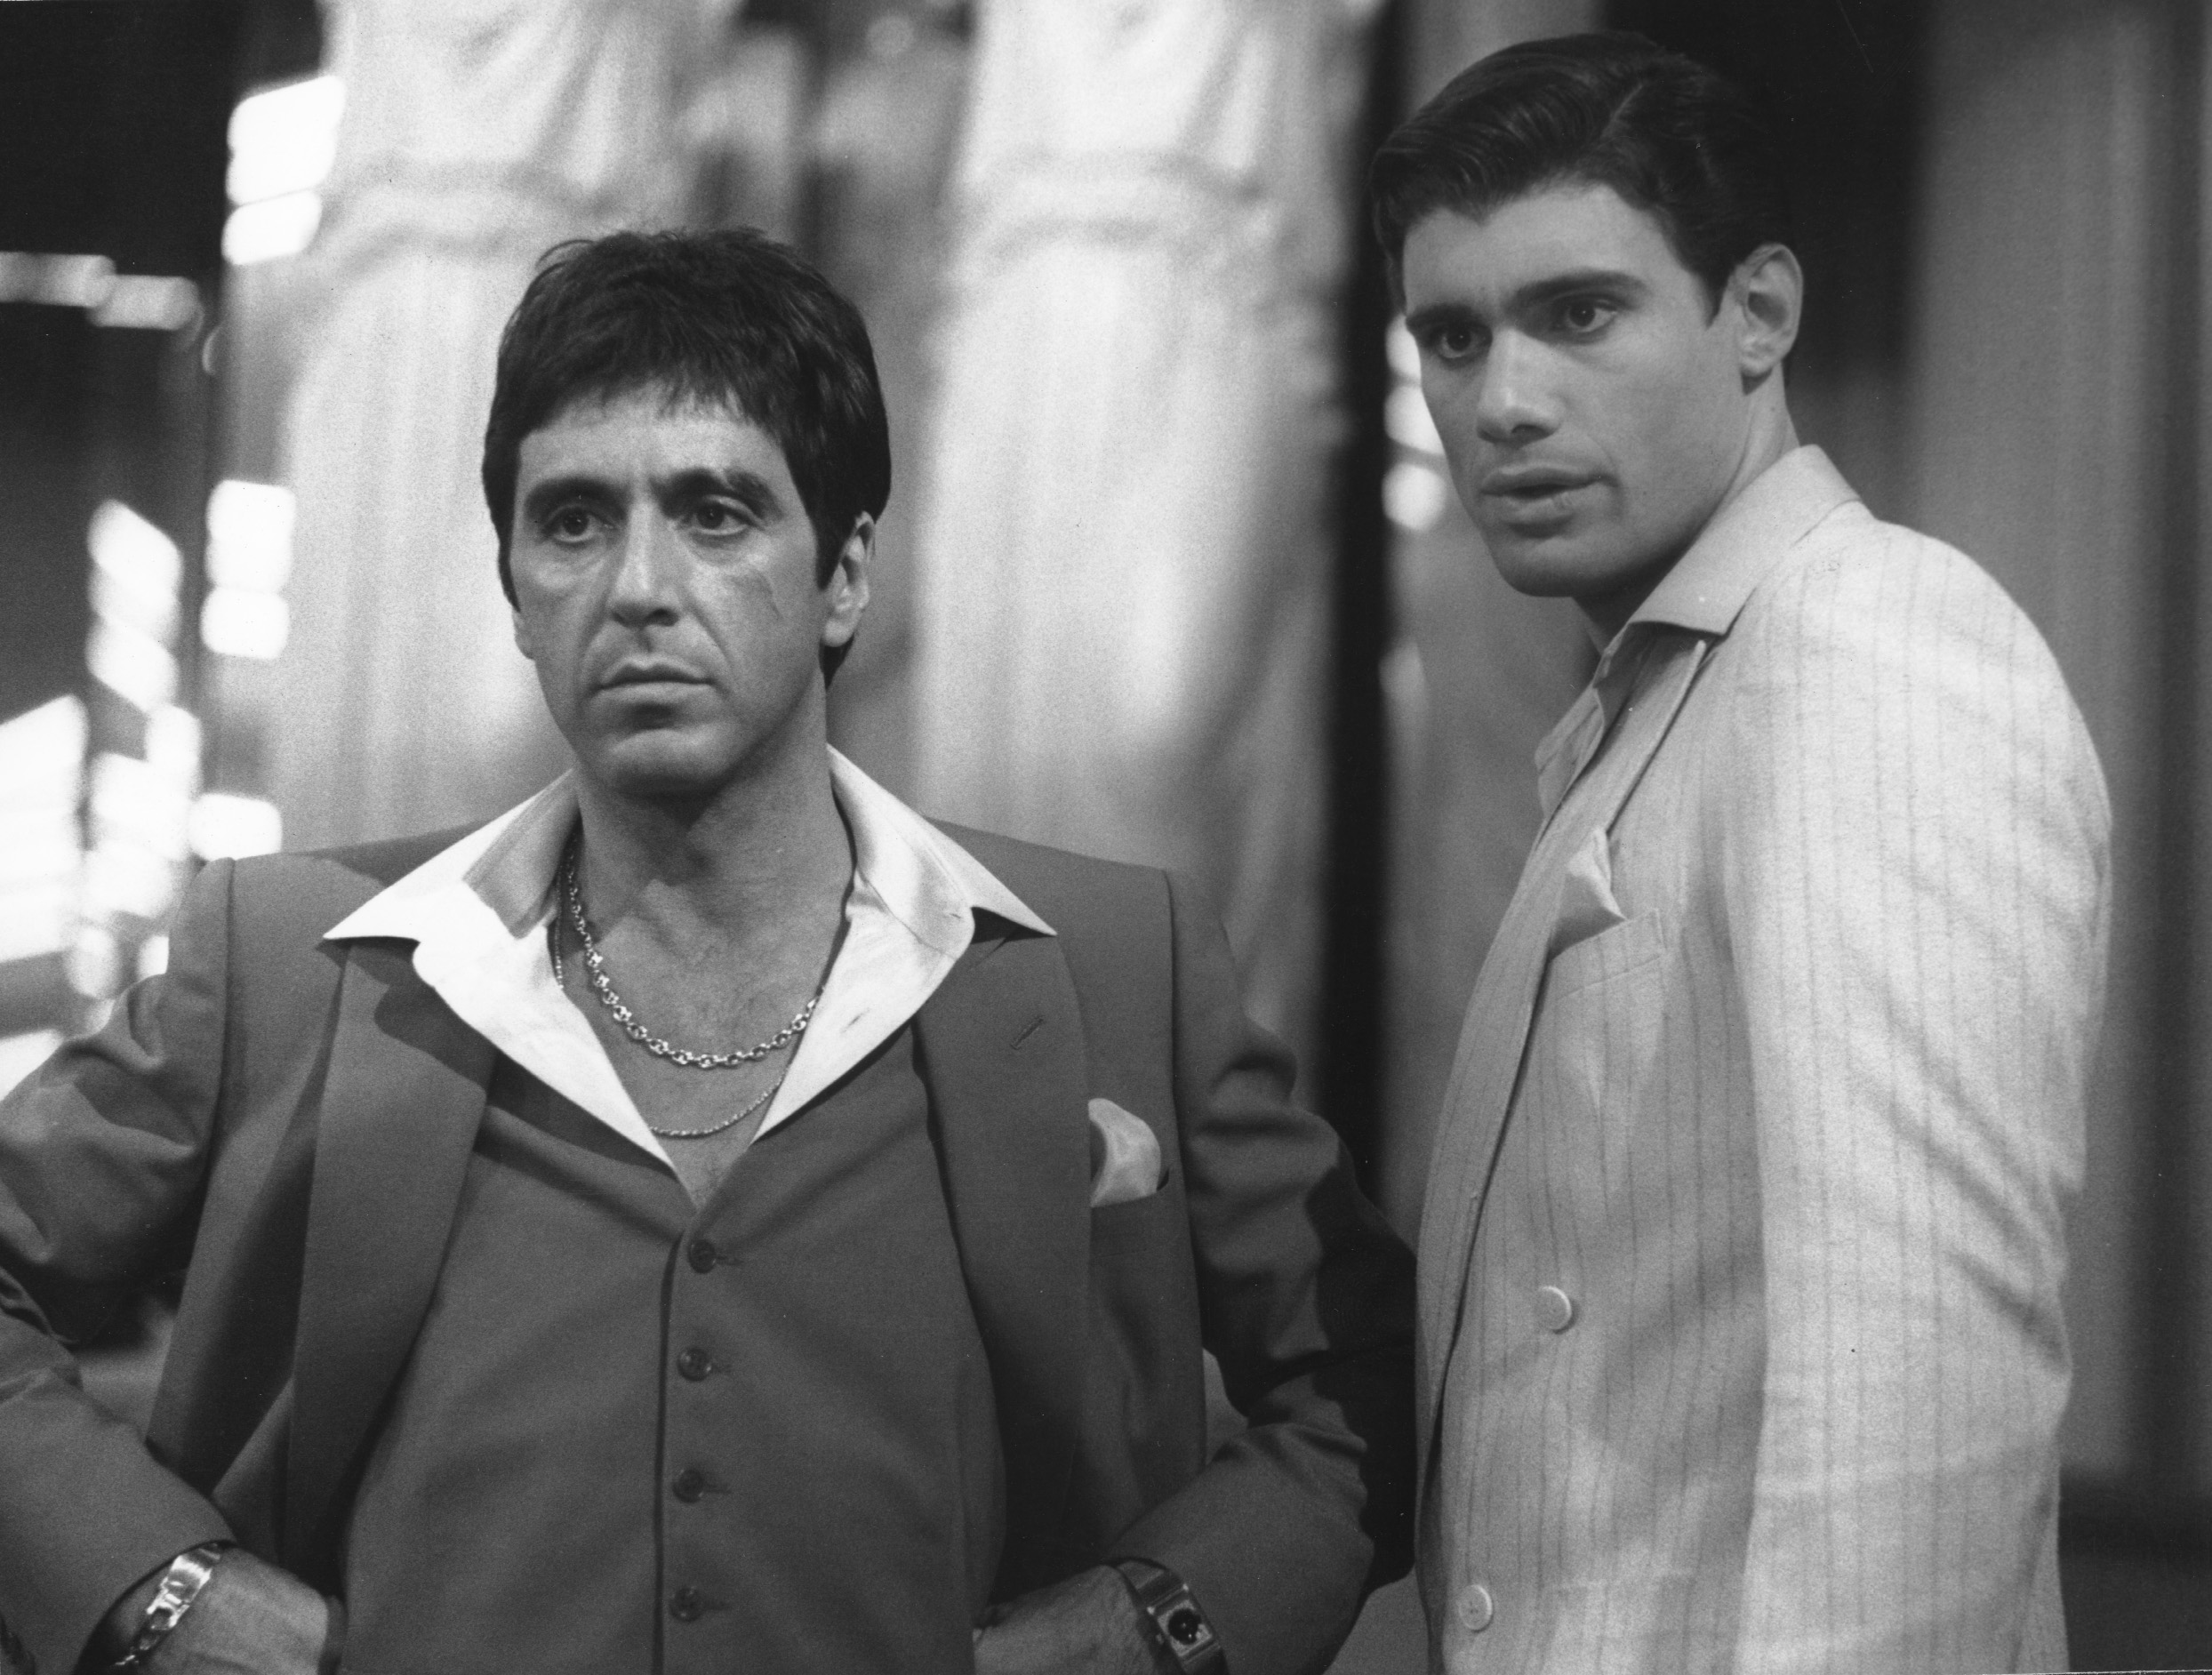 Better Call Saul (Breaking Bad's Spin Off) TV Show - Página 2 Scarface-1983-pic